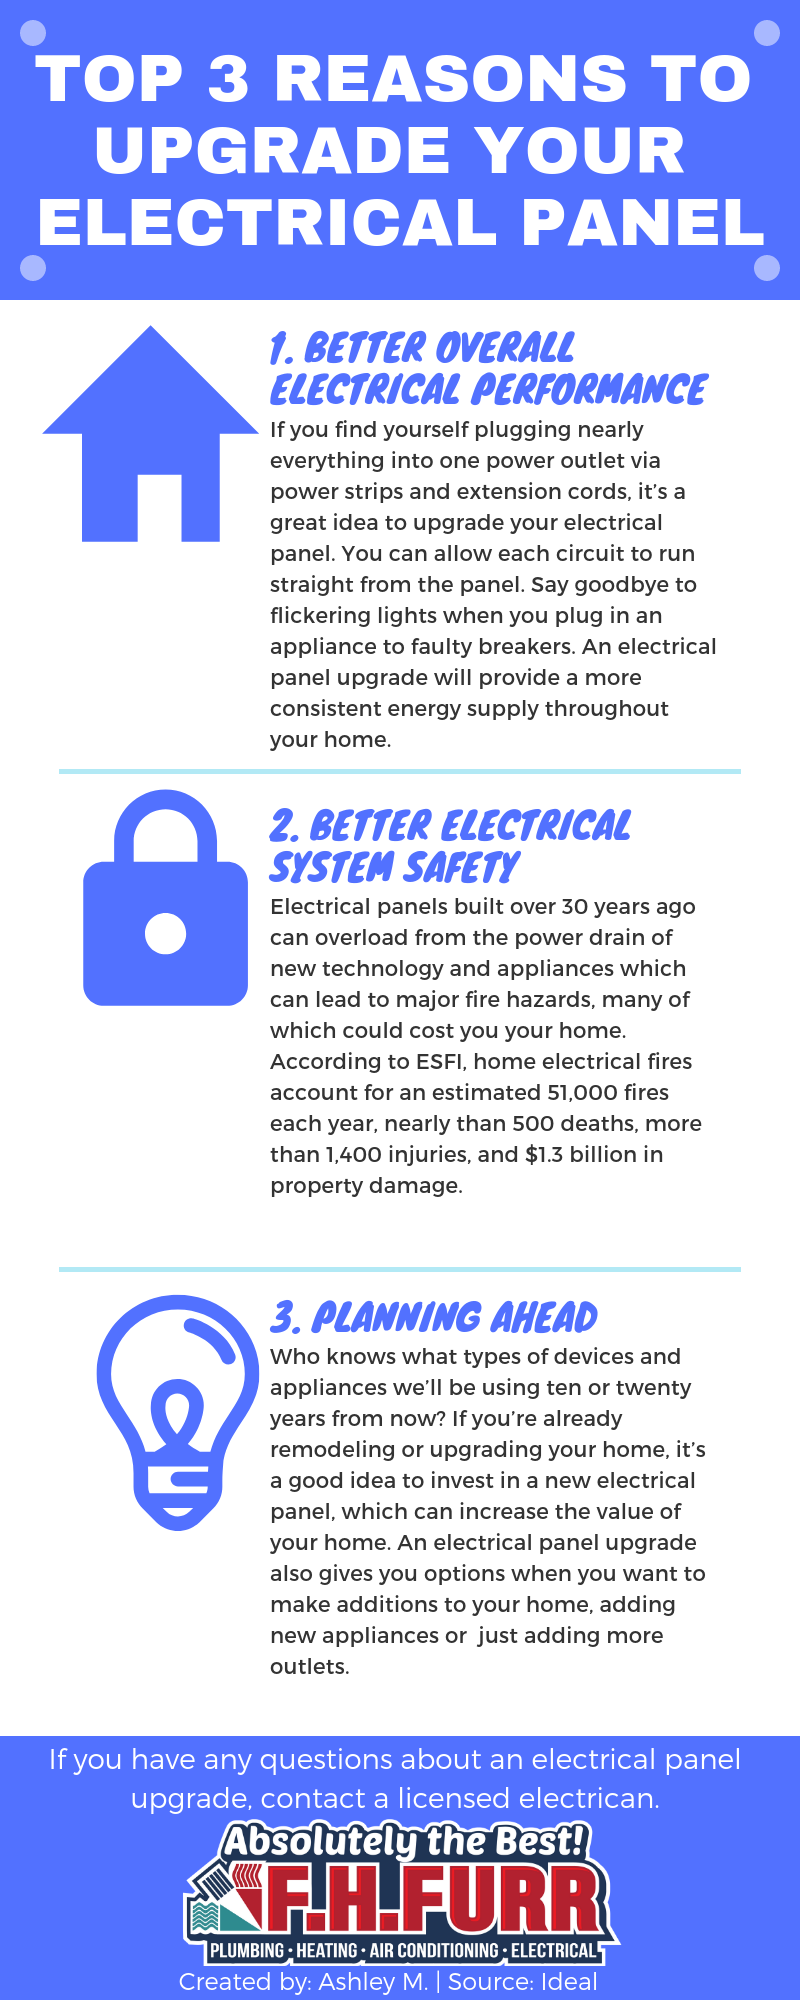 Top 3 Reasons To Upgrade Your Electrical Panel  (1)